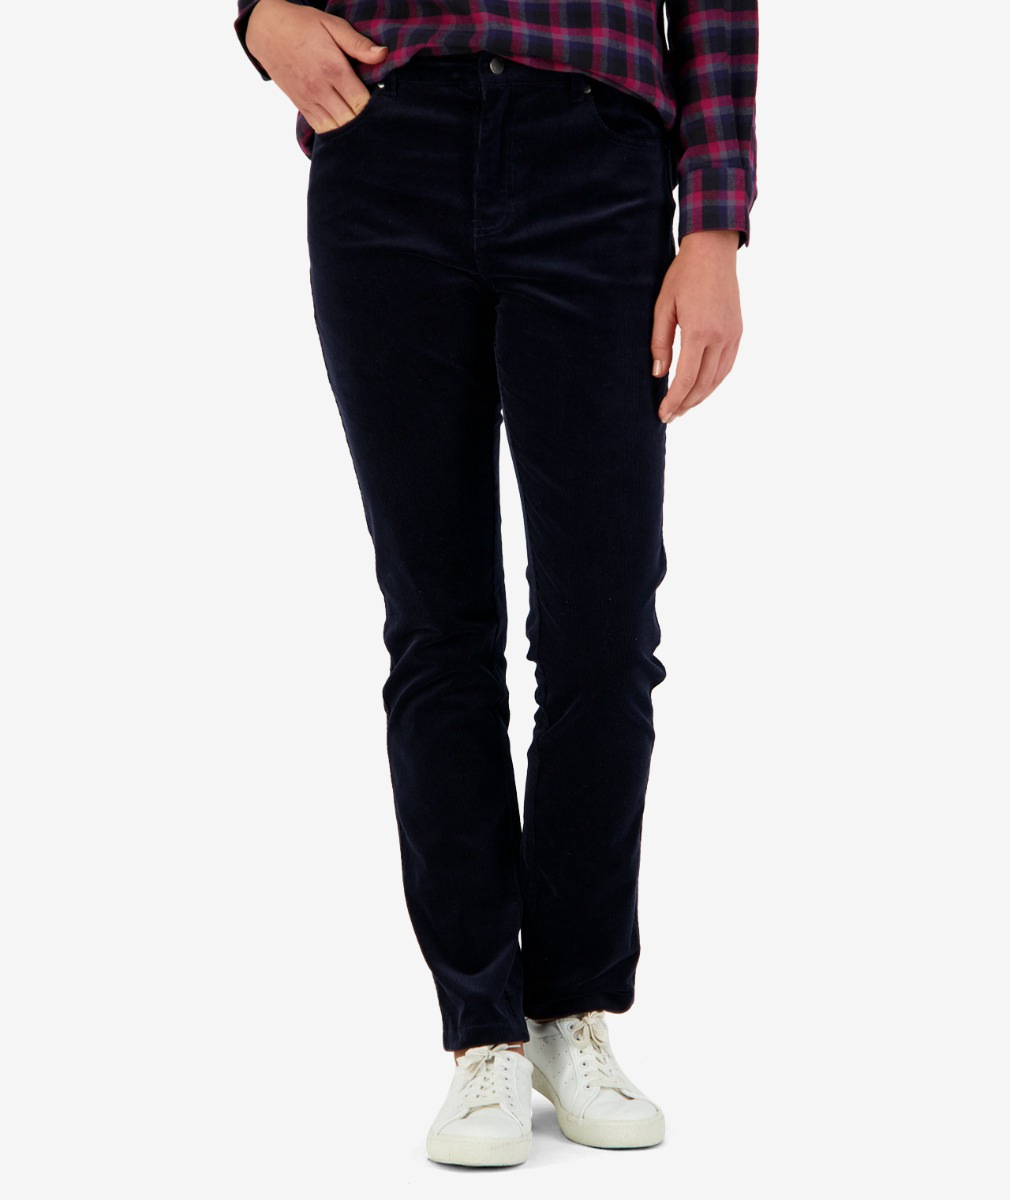 Penrith straight leg cord pants in navy front view